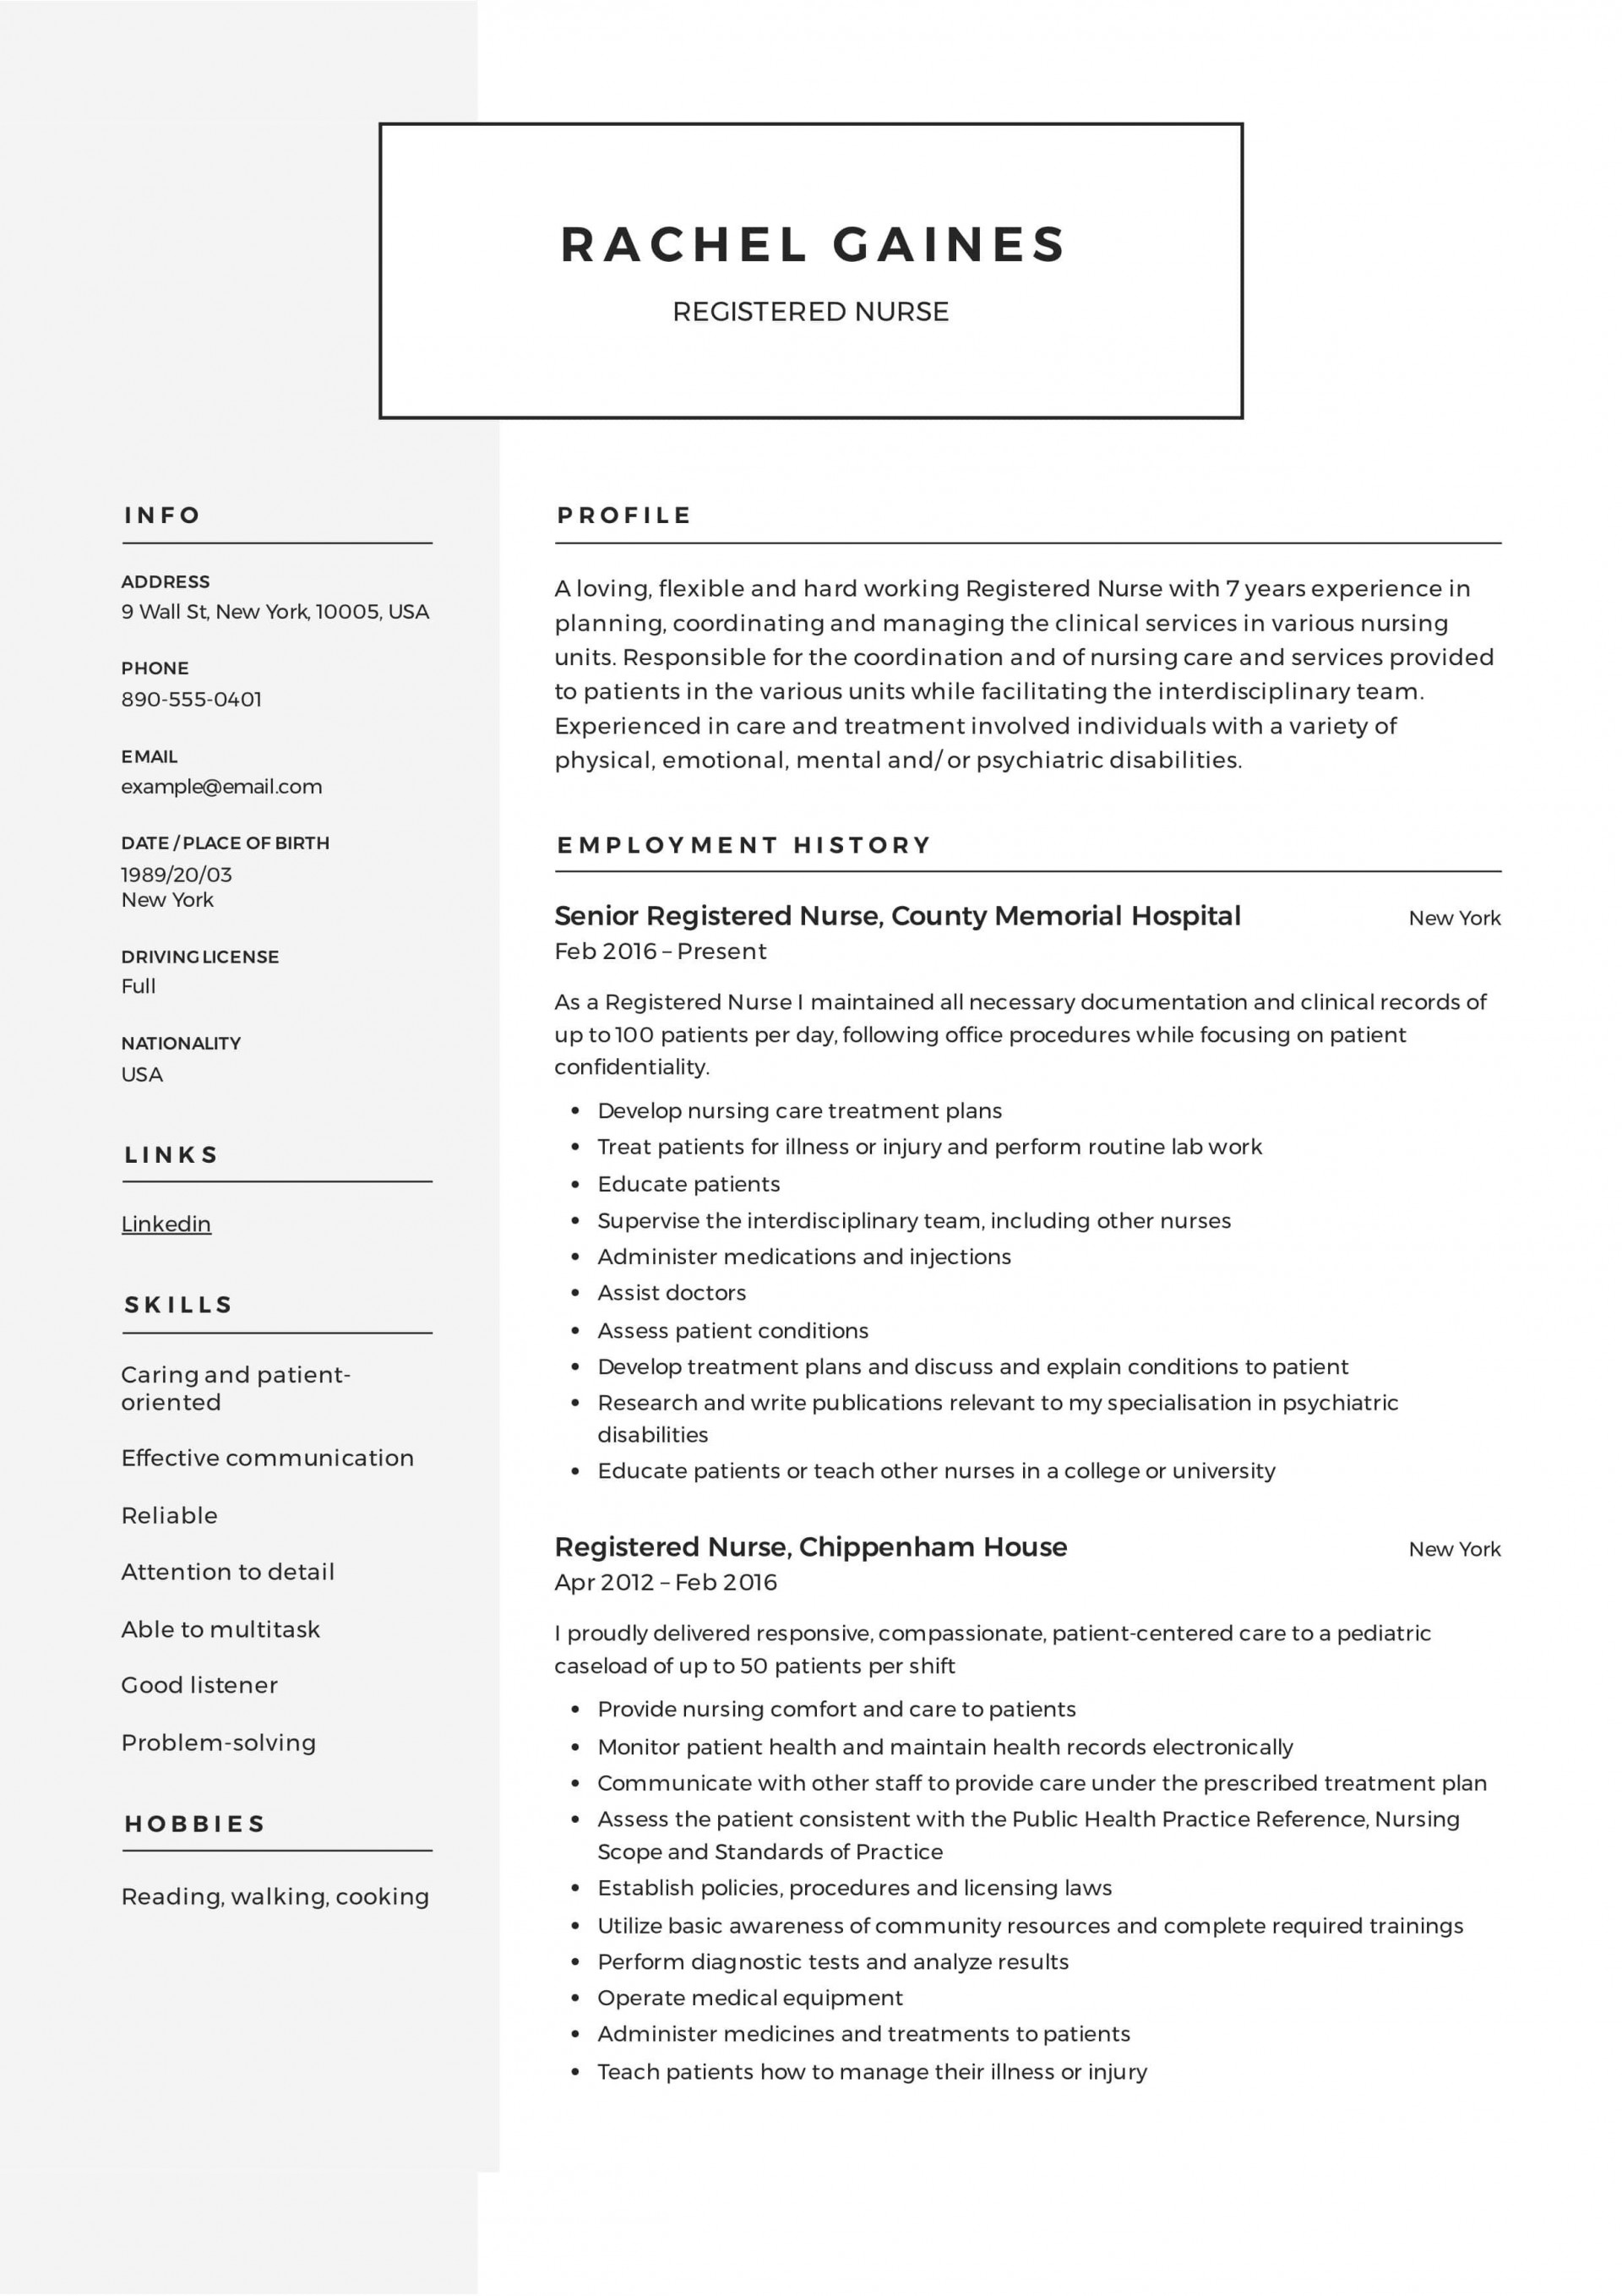 008 Incredible Nurse Resume Template Word Picture  Cv Free Download Rn1920